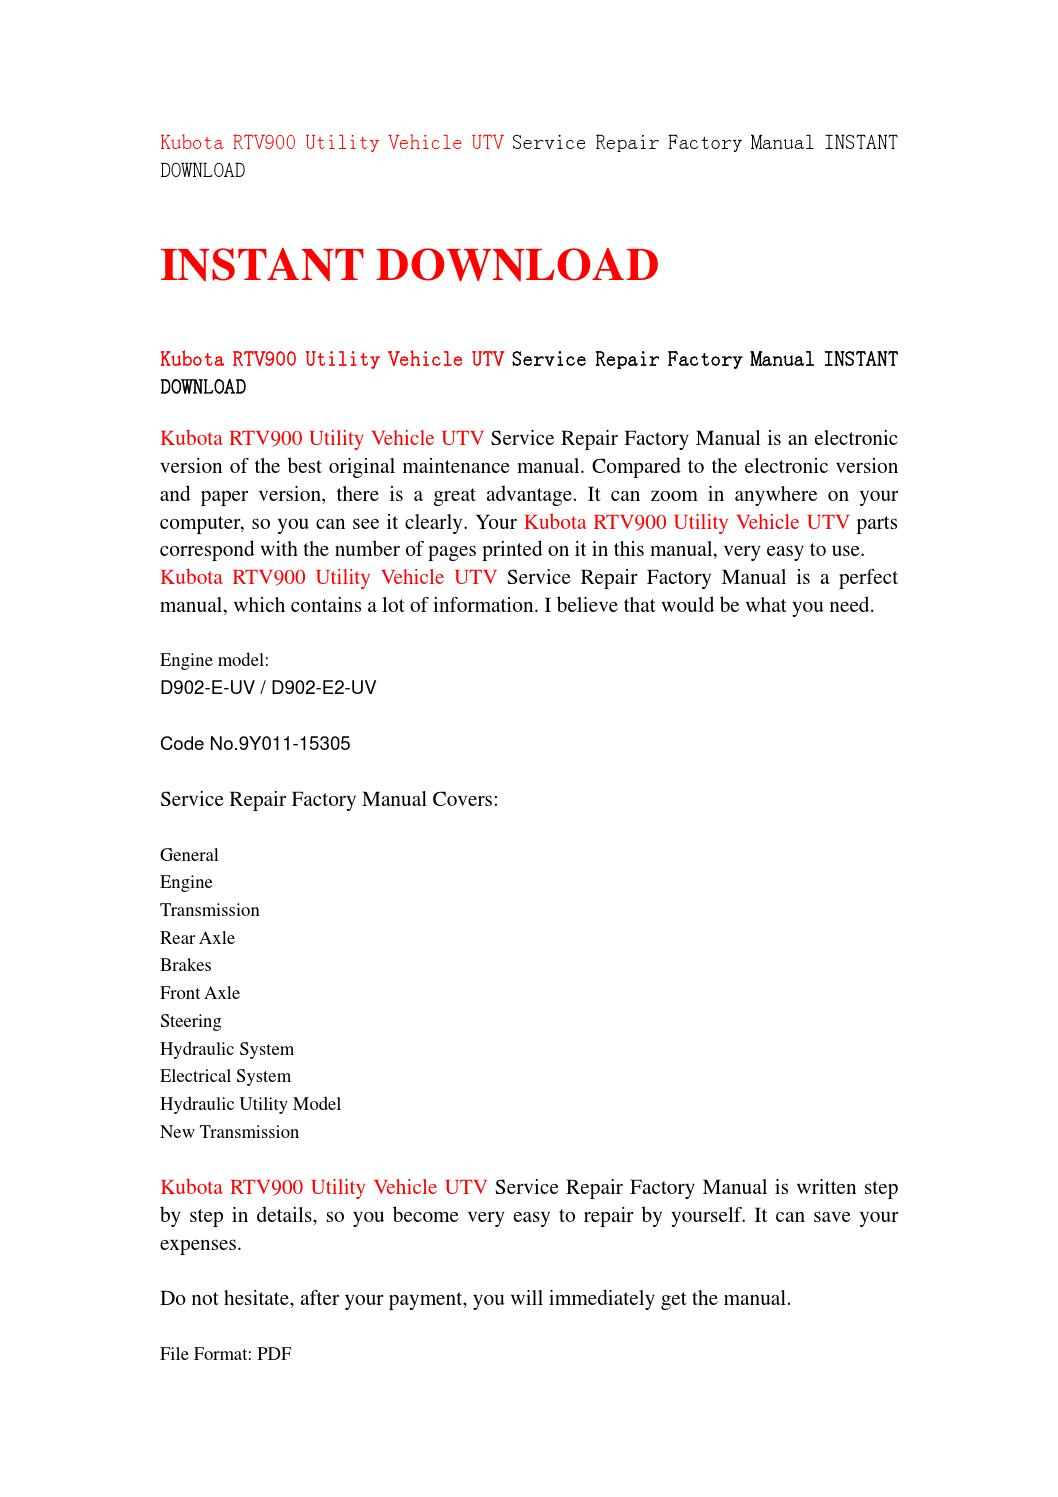 Kubota rtv900 utility vehicle utv service repair factory manual instant  download by sjefhsnen - issuu